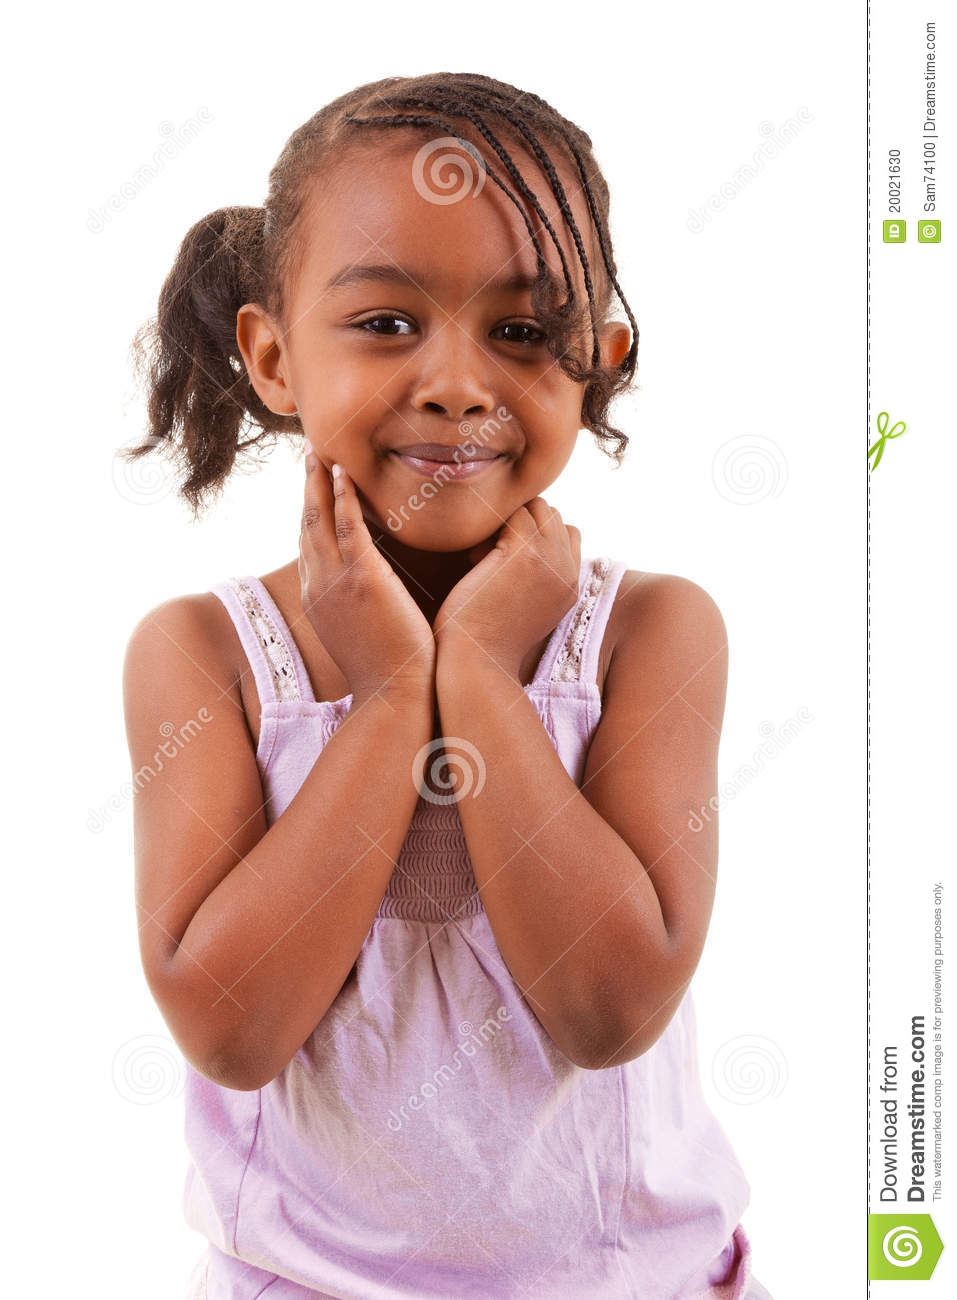 Cute Black Girl Smiling Stock Photo. Image Of Infant